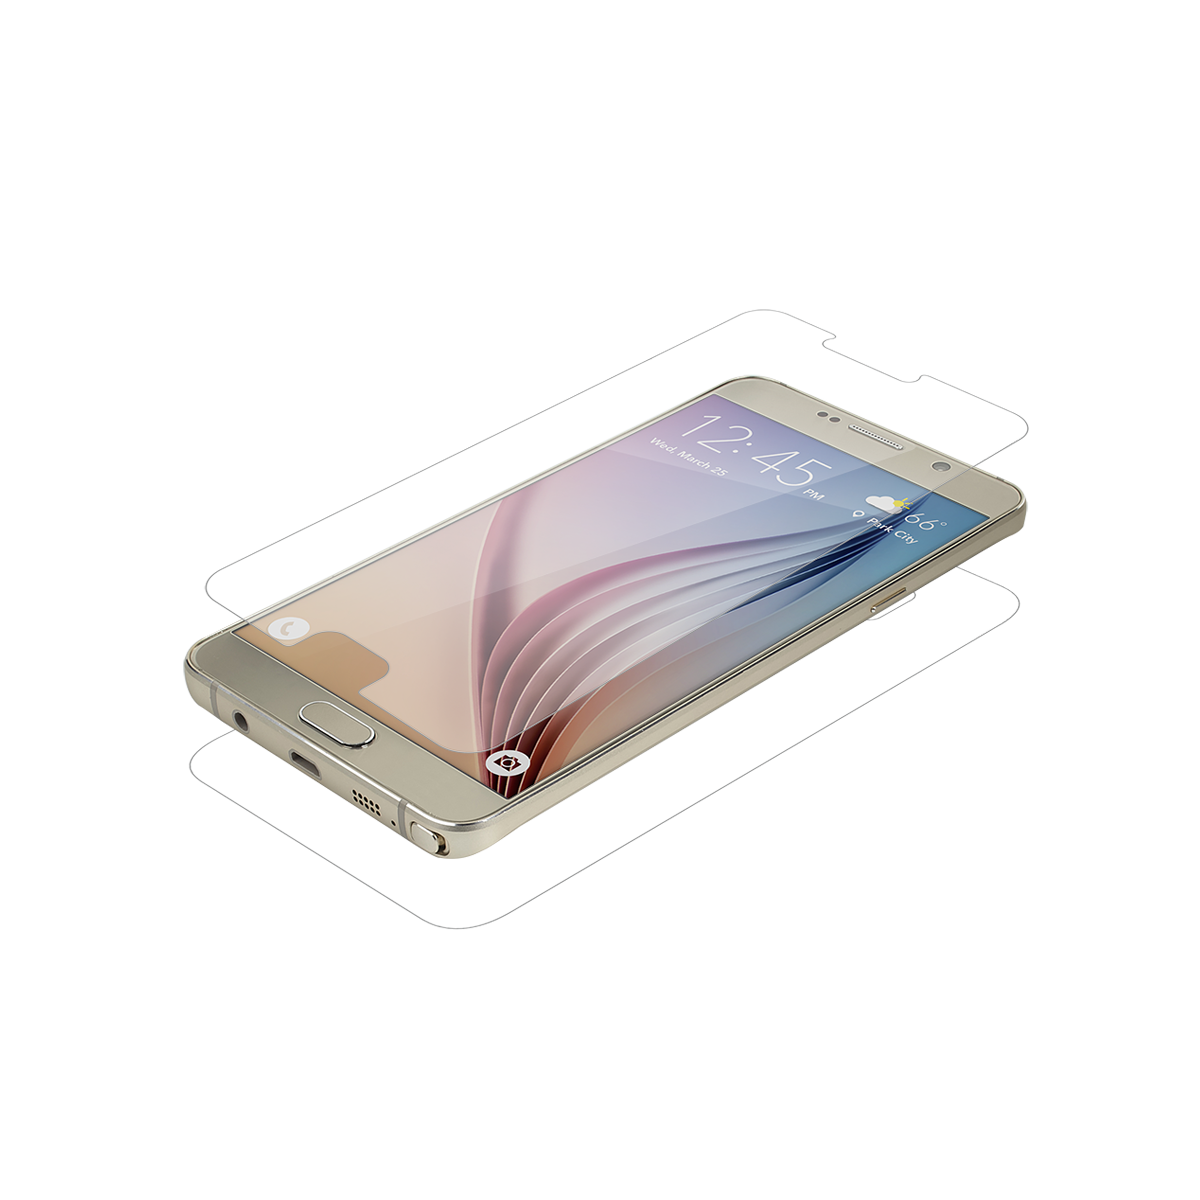 InvisibleShield HDX for the Samsung Galaxy Note 5